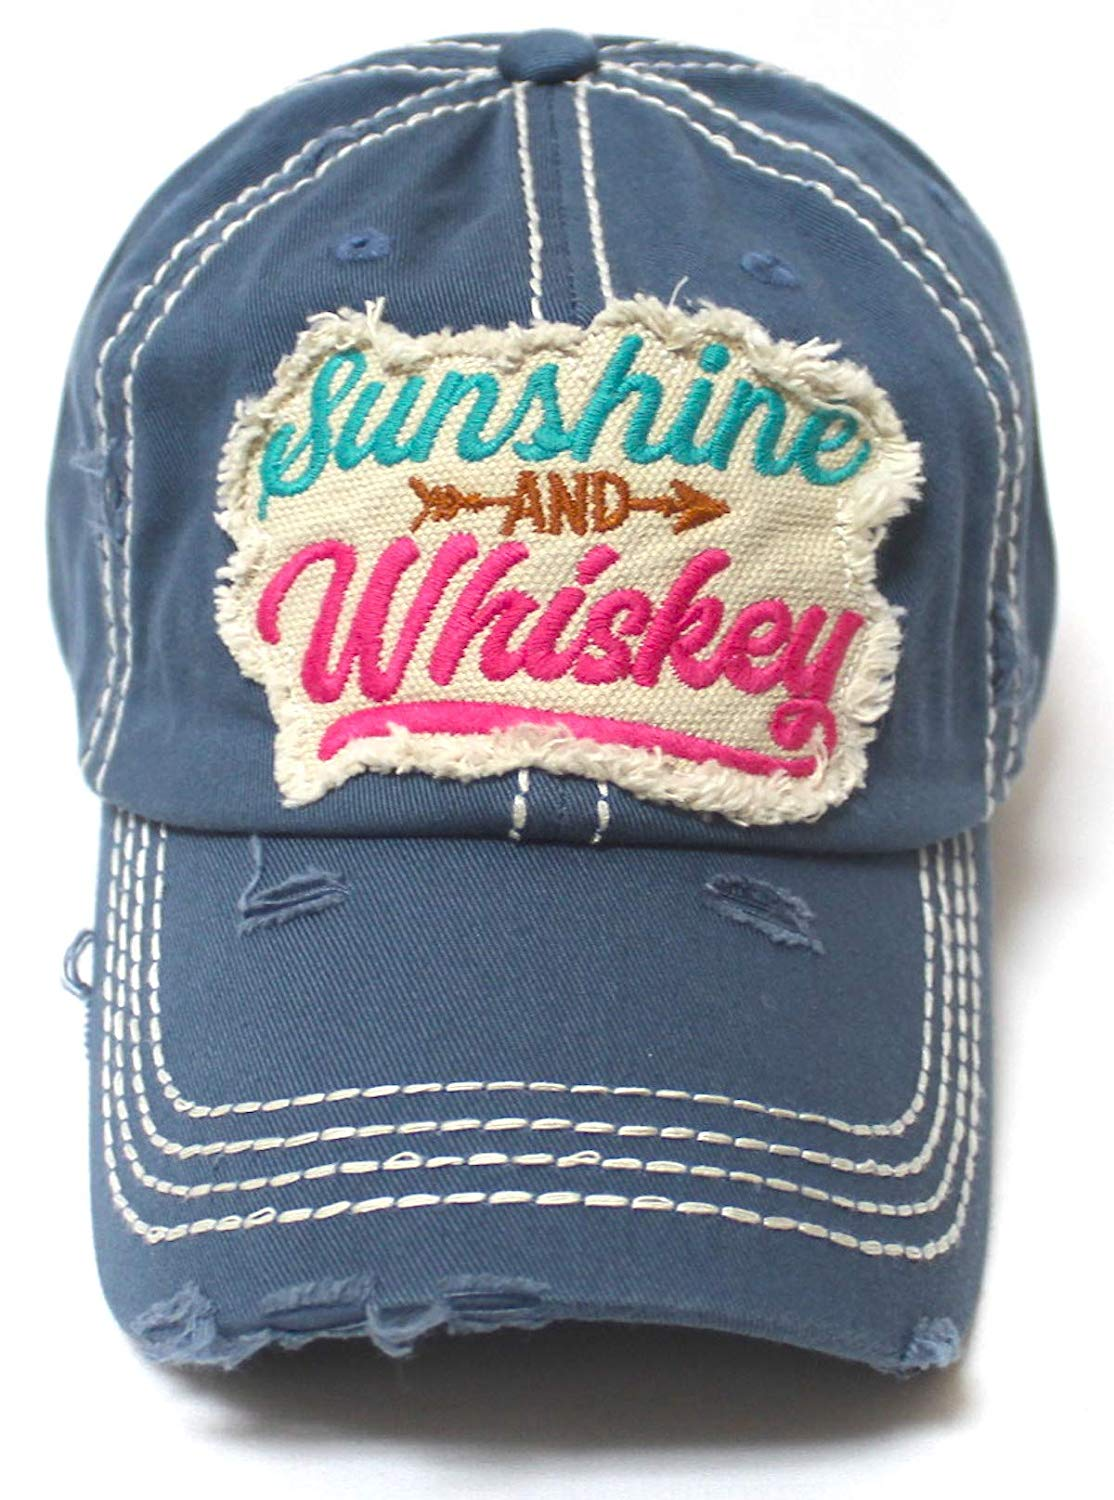 Women's Ballcap Sunshine and Whiskey Tribal Arrow Patch Embroidery Hat, Teal Blue - Caps 'N Vintage